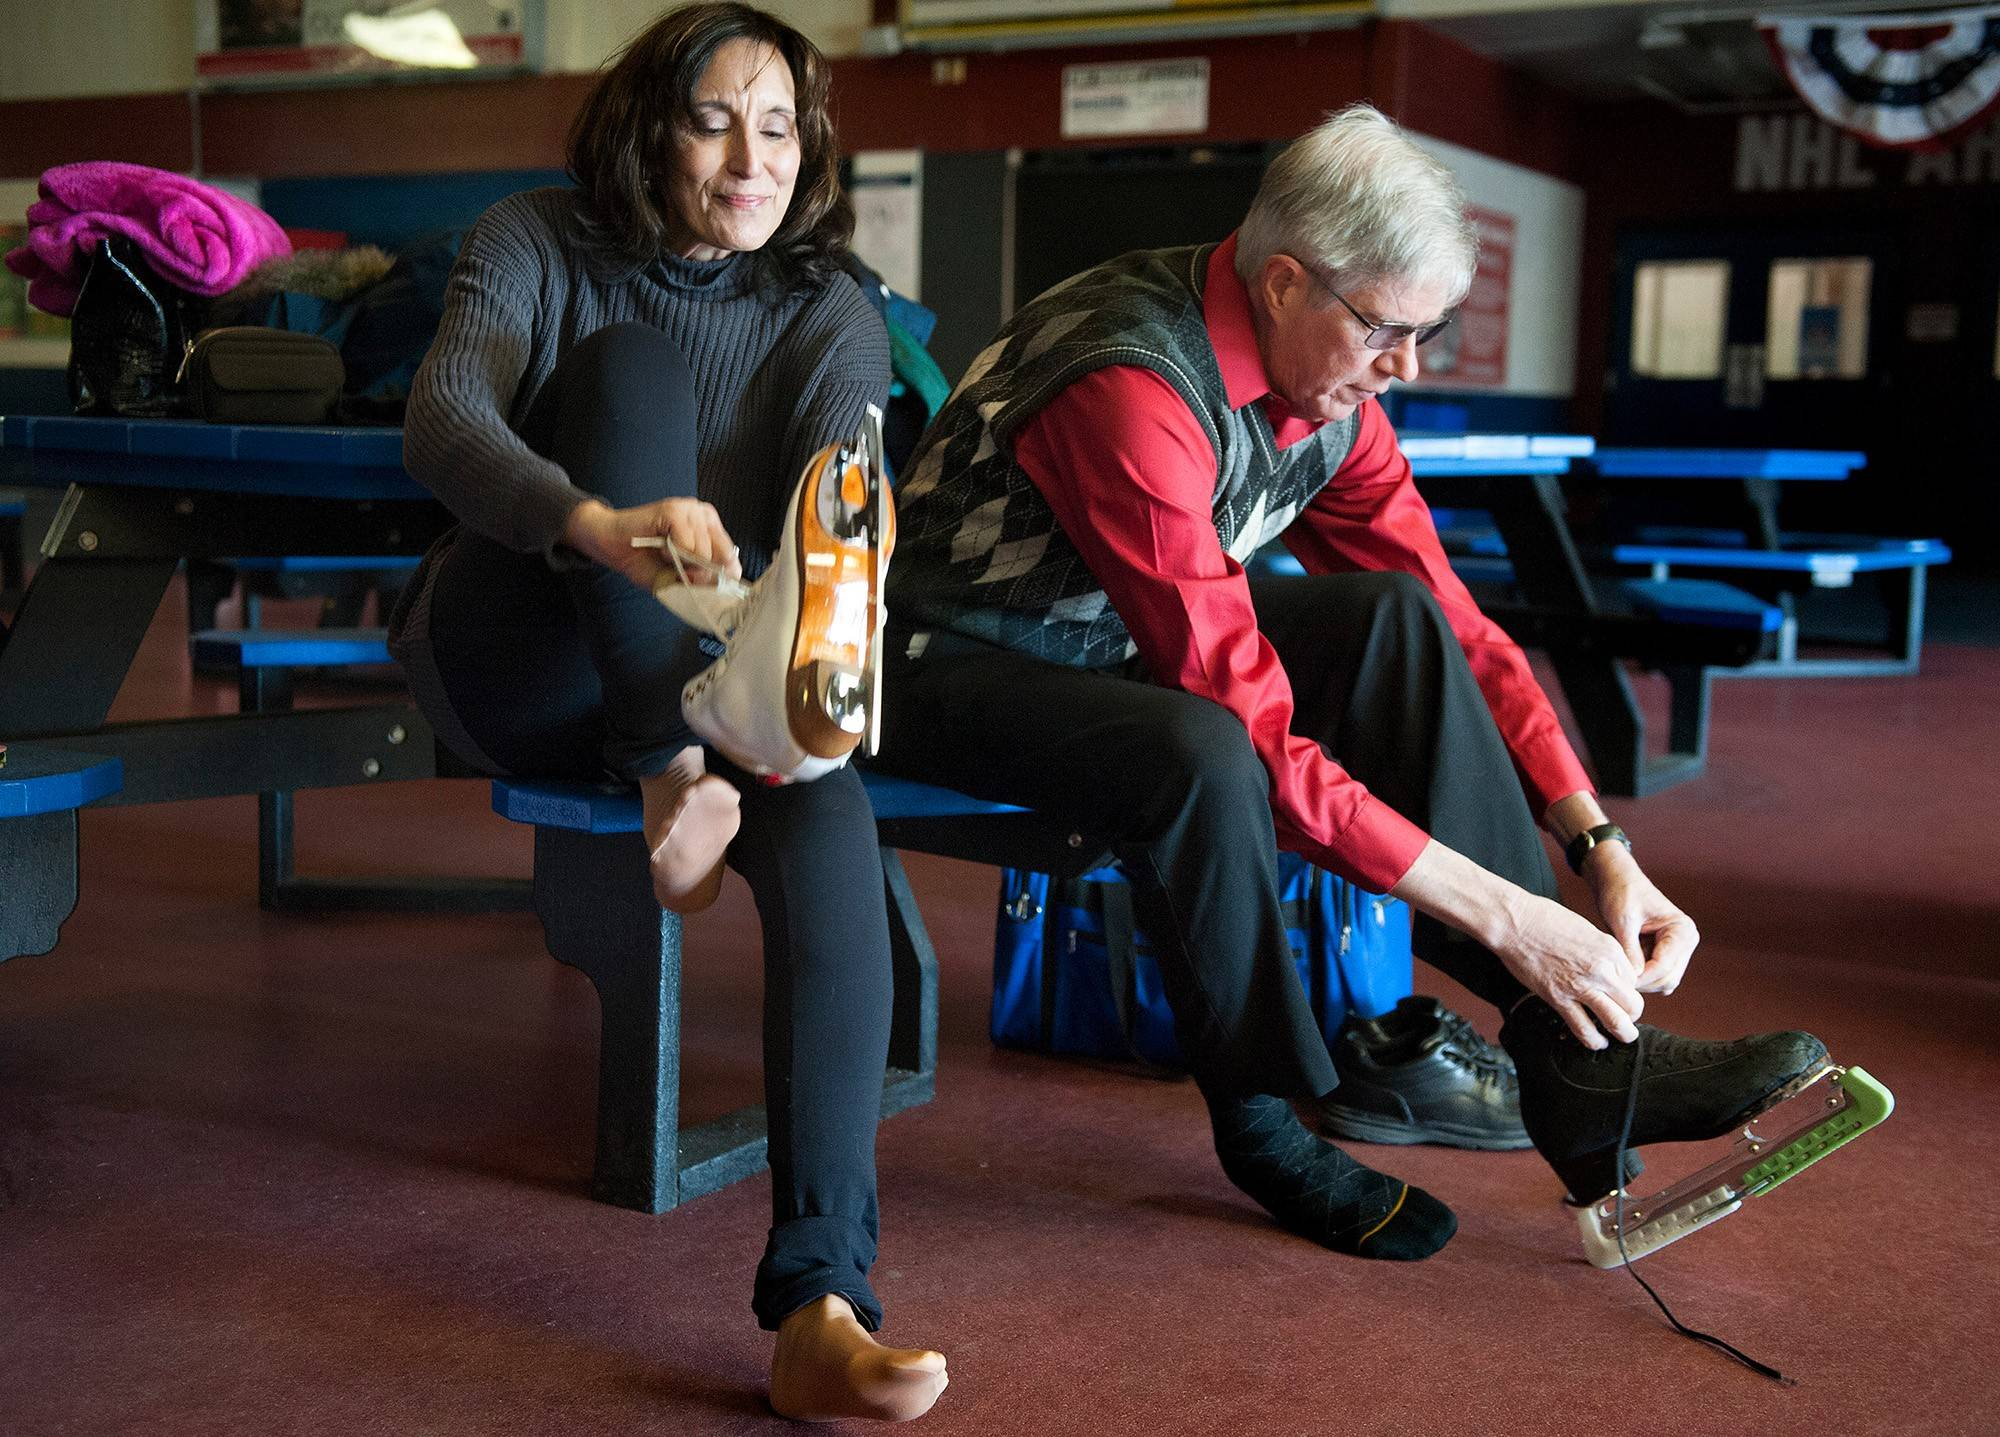 Jeanne Erdmann. 60, laces up beside Bill Coalson at a skating center in Chesterfield, Mo.; she skates three to four times a week and trains off the ice with weights, Pilates and dancing _ anything to improve strength and flexibility.